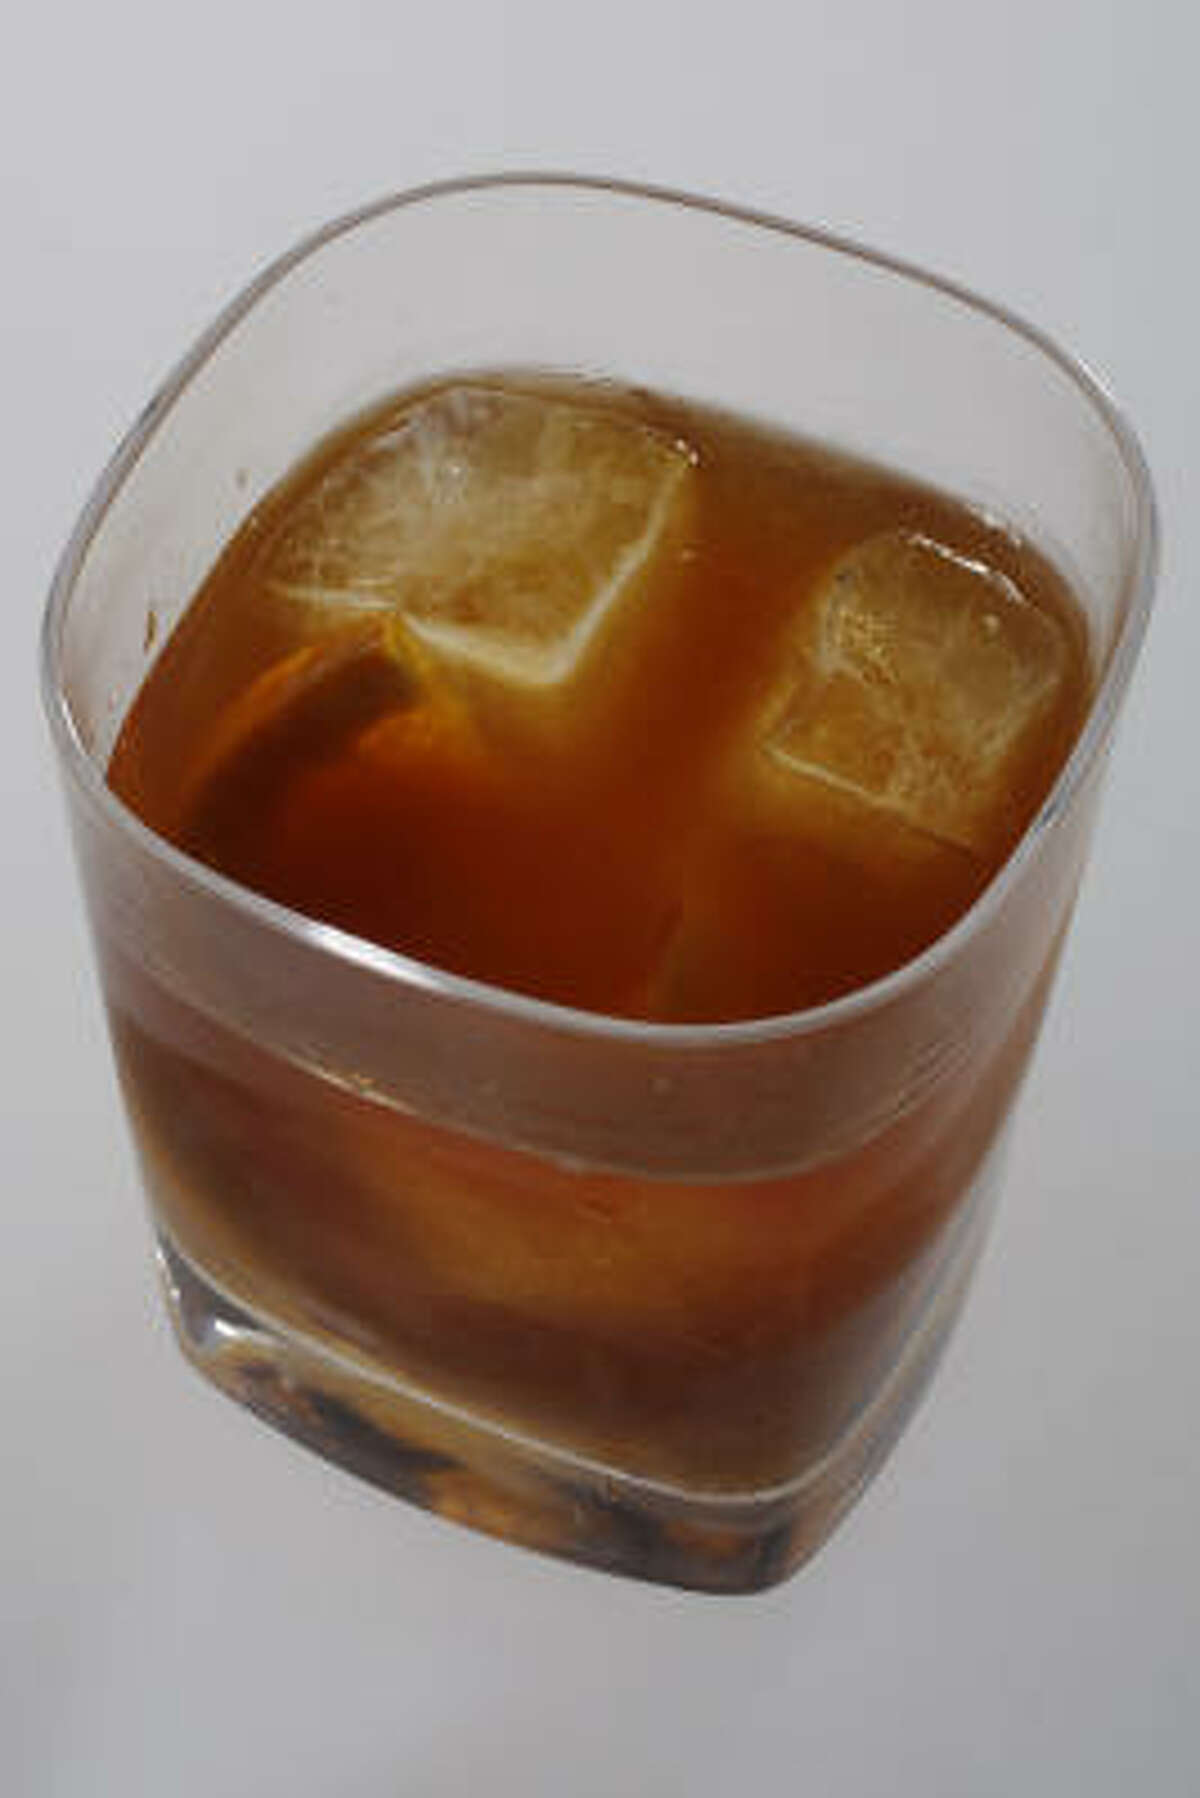 Old-Fashioned: You'll need to know how to make a great old-fashioned if you want to impress your boss when you have her over for dinner. 1 sugar cube; 3 to 5 to 7 dashes Angostura bitters; 1 Luxardo maraschino cherry; 1 half-wheel orange; 3 ounces bourbon or straight rye whiskey. Muddle the sugar, bitters, cherry and orange in an old-fashioned glass. Add ice and the whiskey. Stir briefly, for about five seconds. Makes 1 drink.